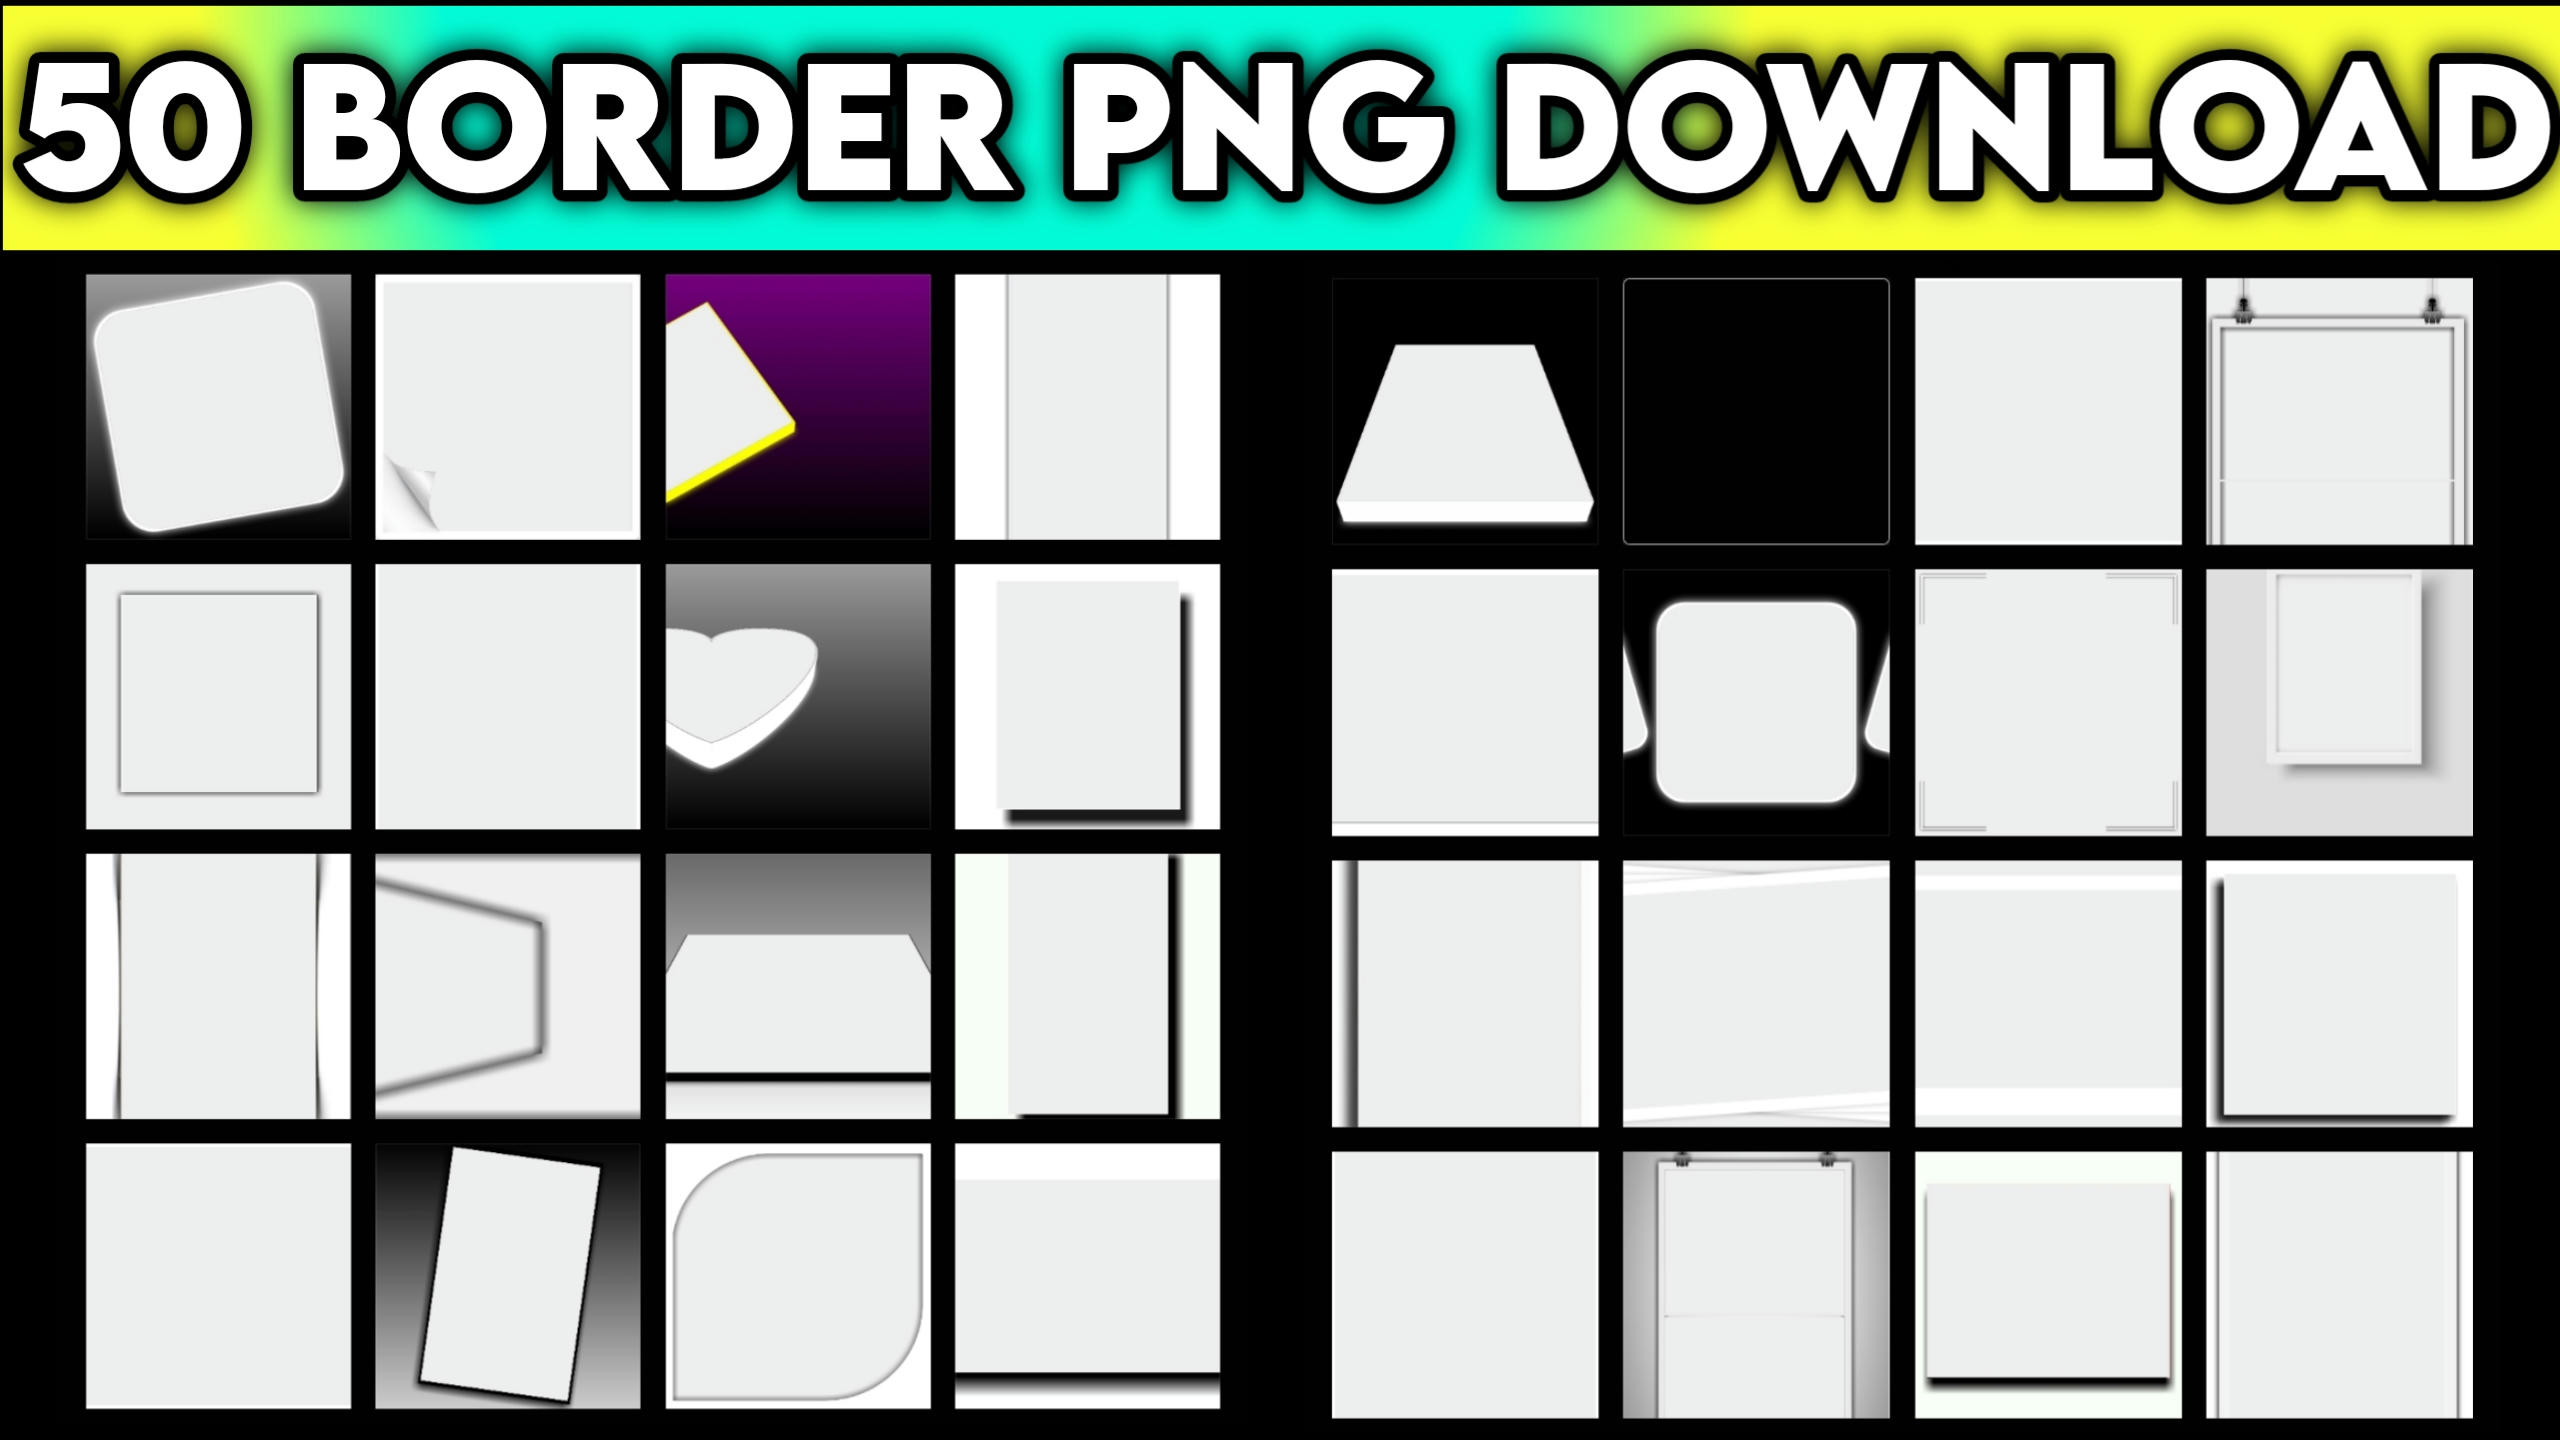 Best Top 50 Border Download Free For Avee Player And Kinemaster Use